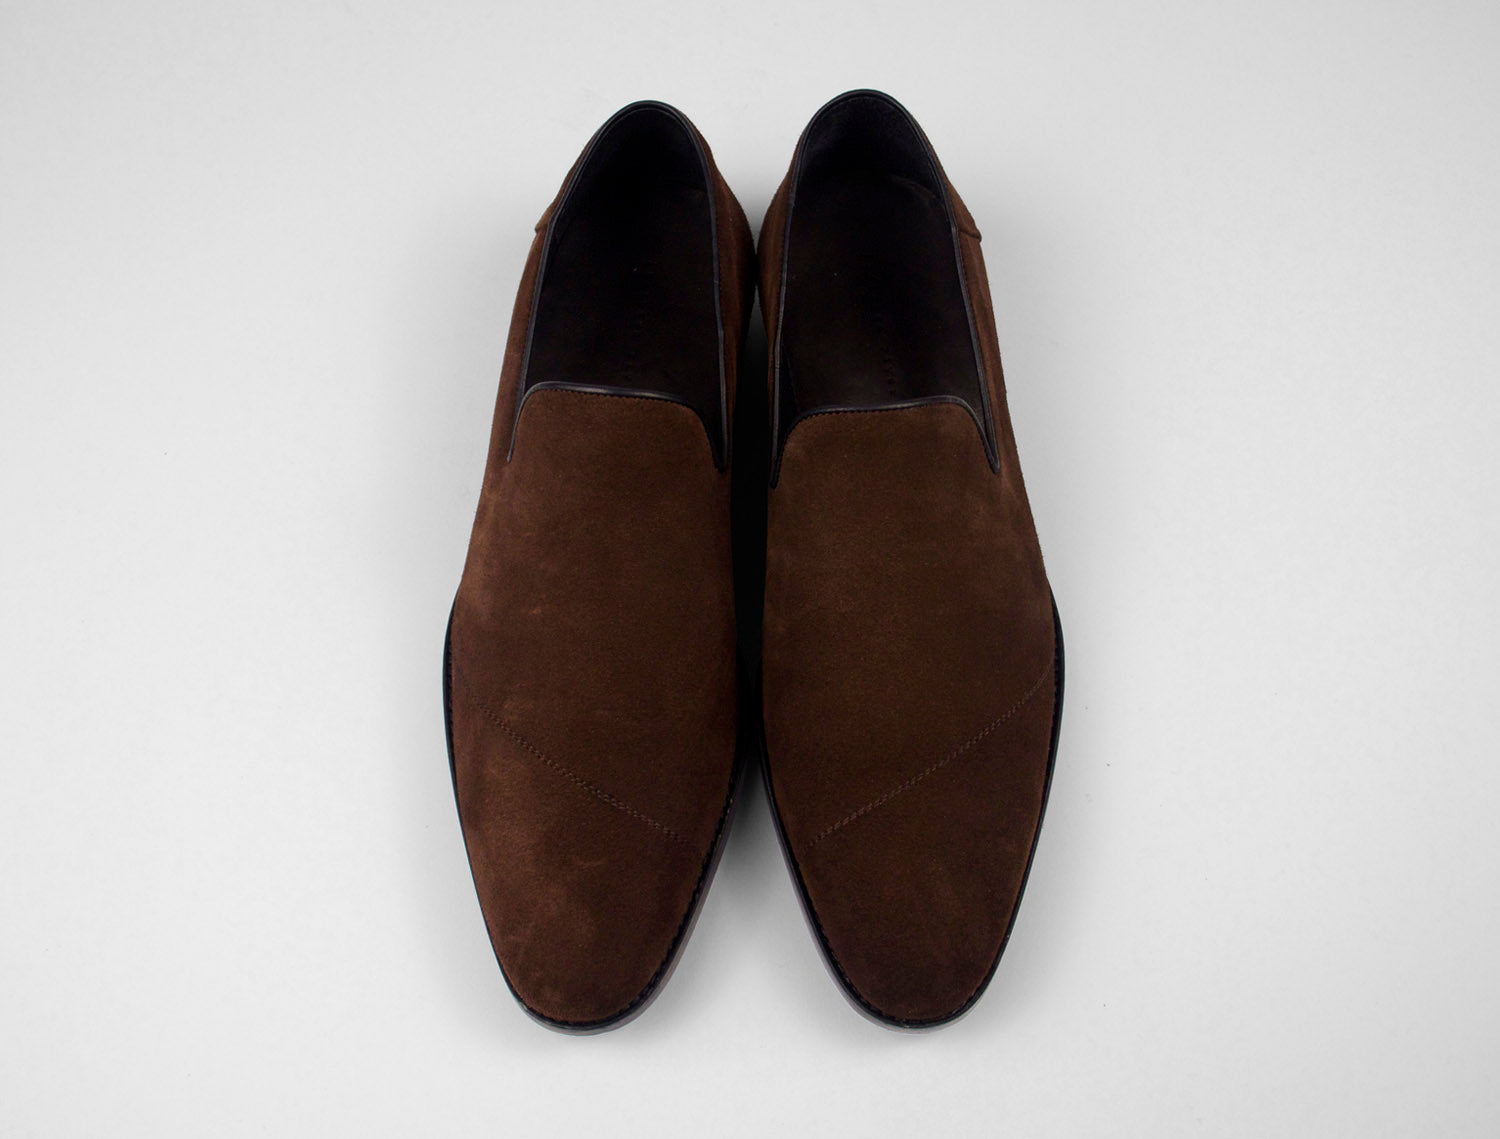 Slip-on in Chocolate Suede